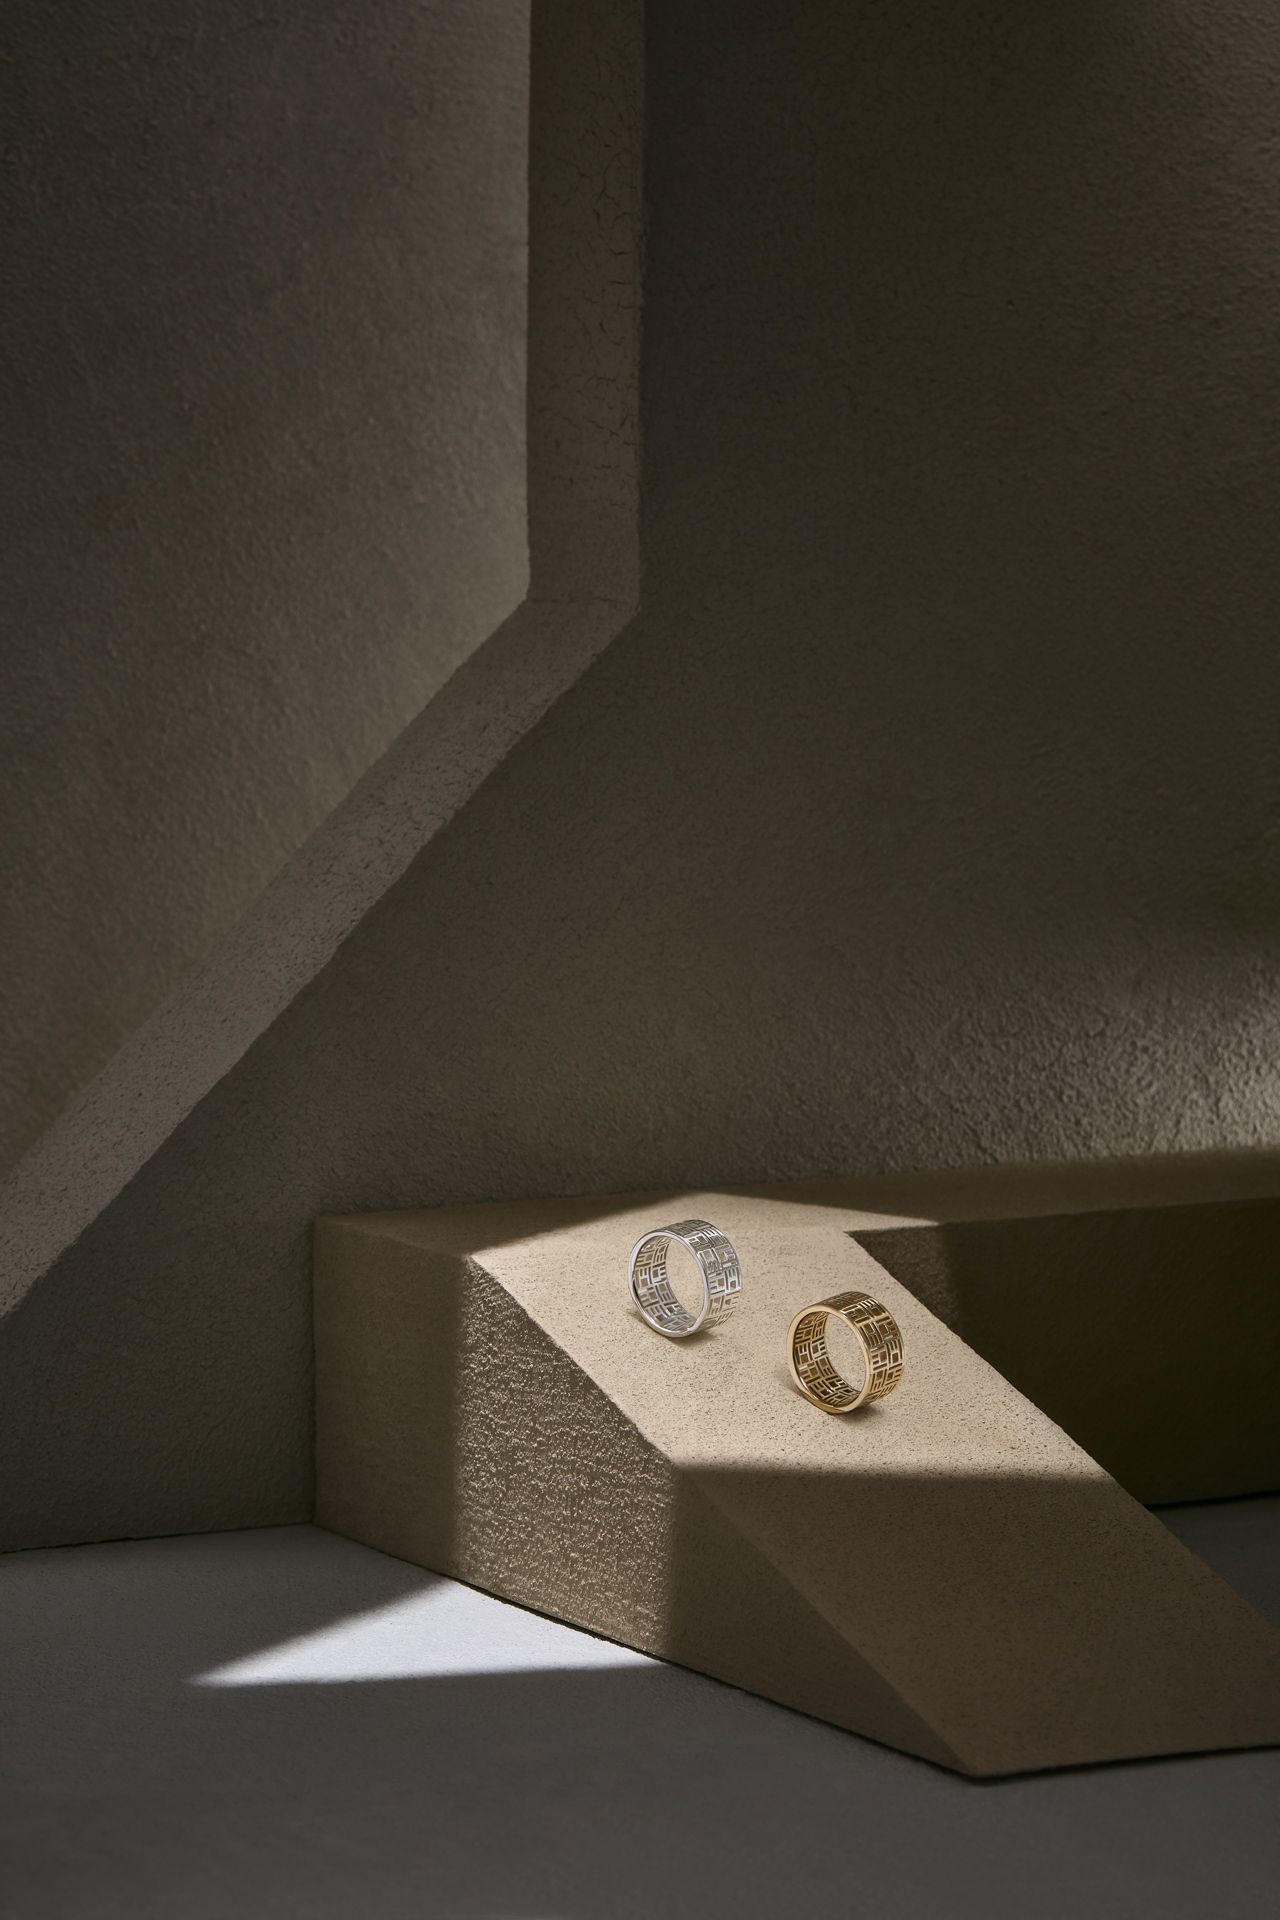 gold and silver carved ring in ray of light in cave or vault-like setting by Mathieu Levesque for Morrier jewelry